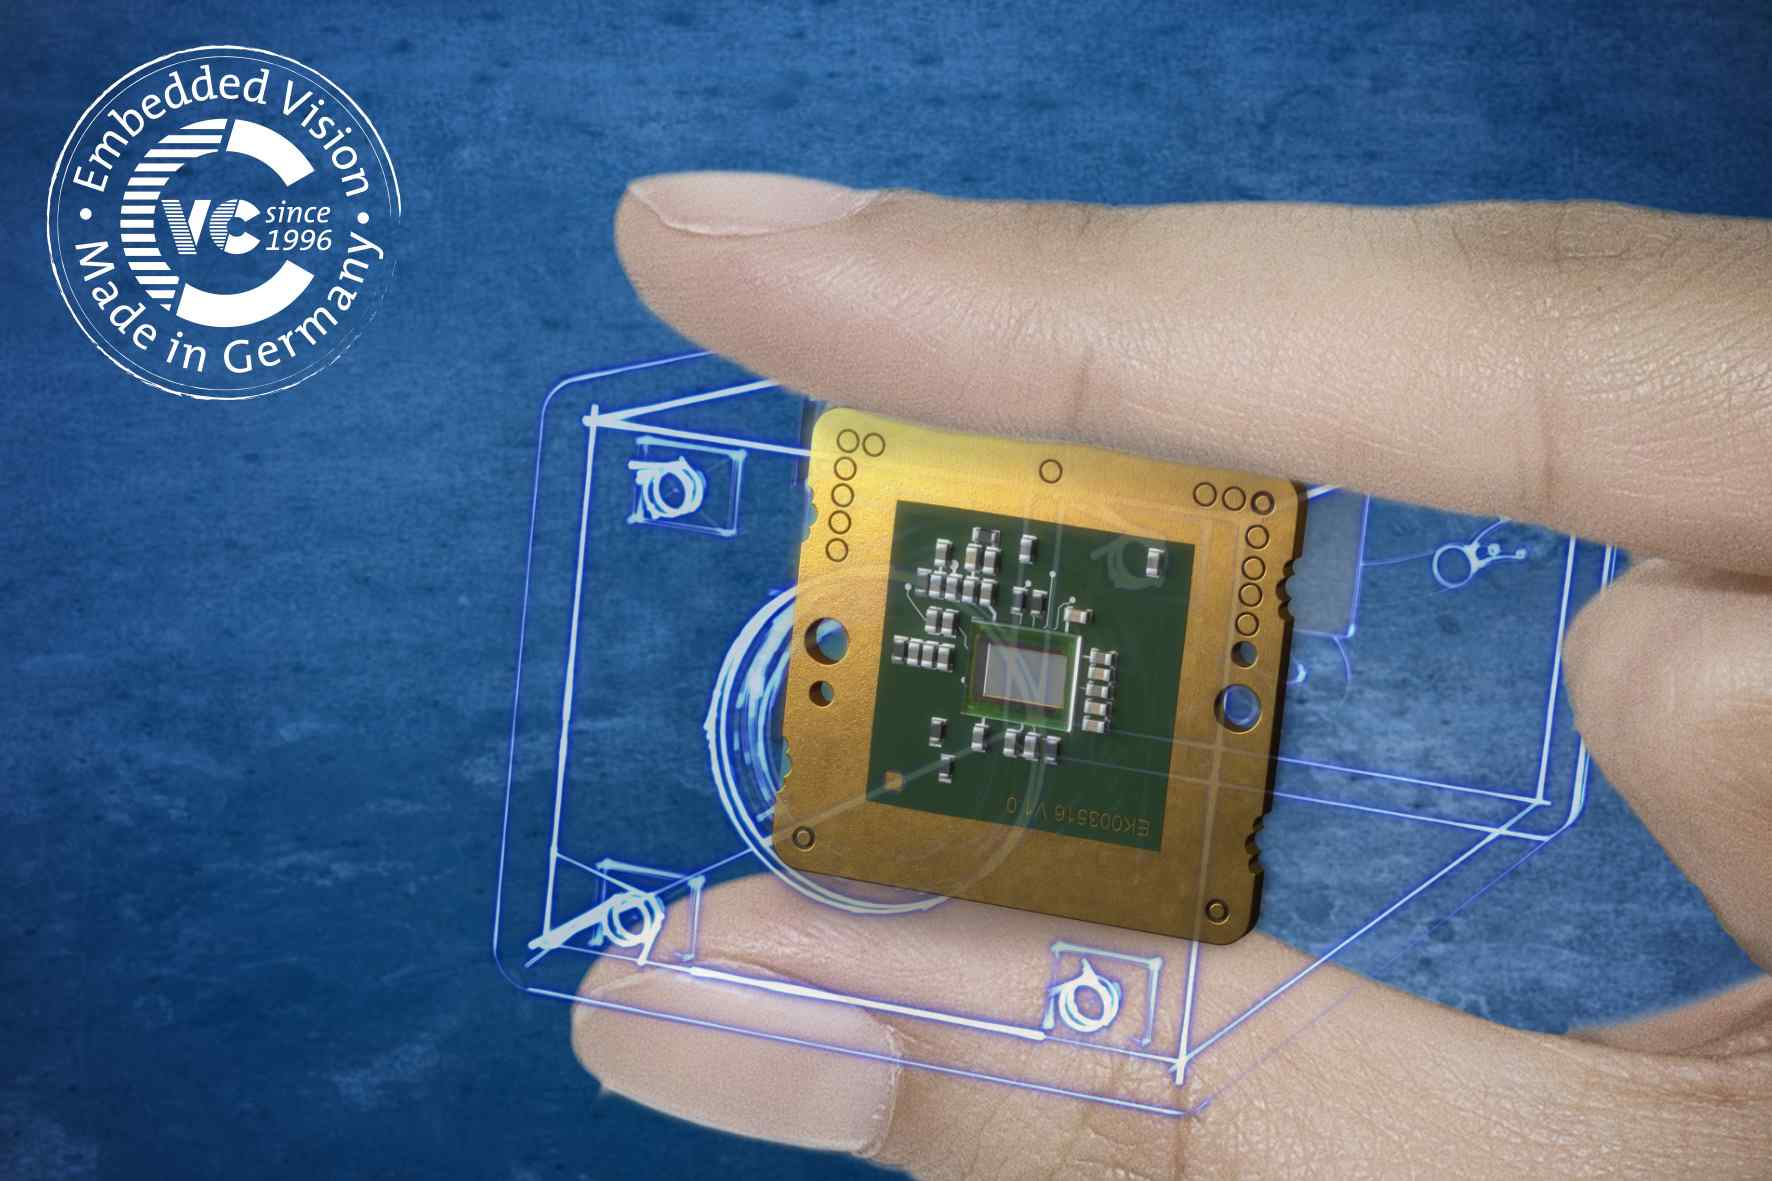 VC picoSmart is probably the smallest embedded vision system in the world